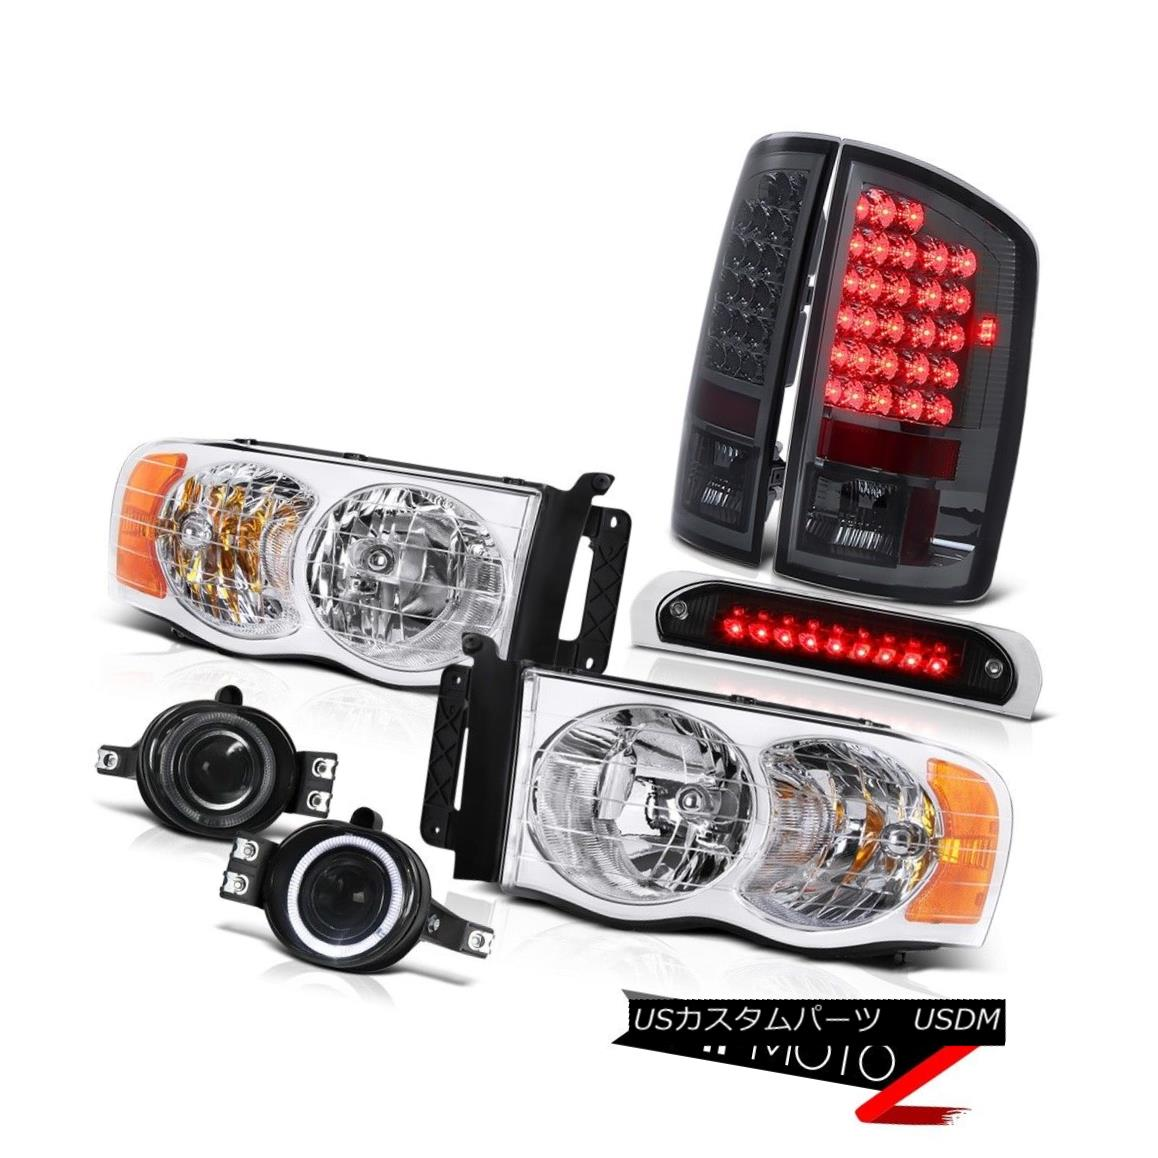 テールライト Clear Headlamps Tail Lights LED Tinted Foglights 3rd Brake 02 03 04 05 Dodge Ram クリアヘッドランプテールライトLED Tinted Foglights 3rdブレーキ02 03 04 05 Dodge Ram